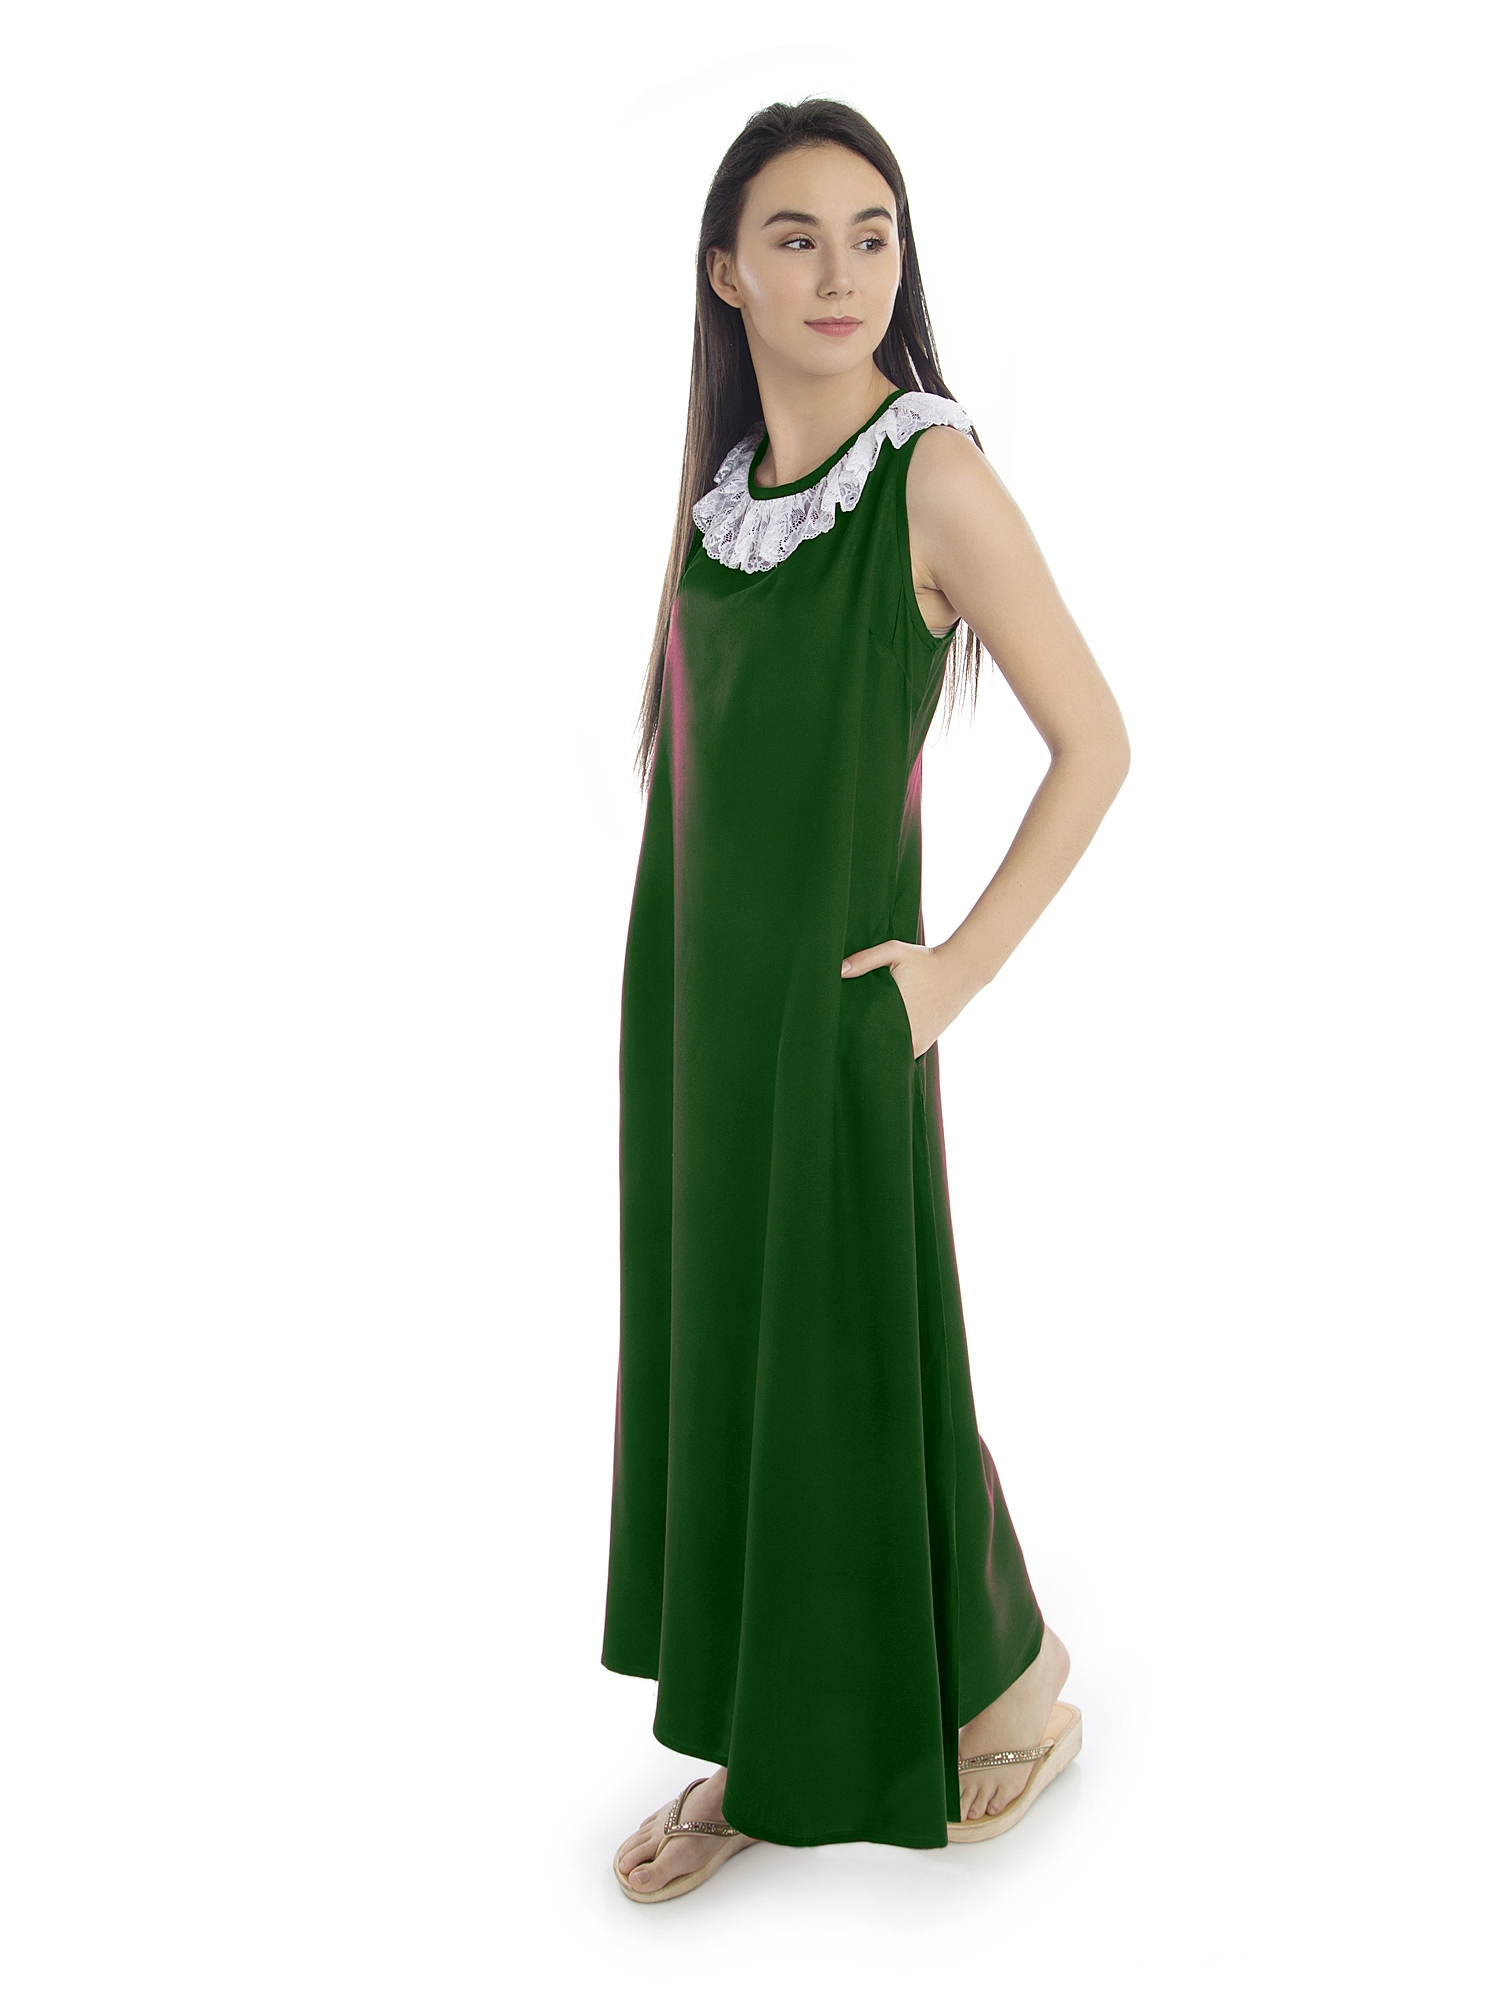 Round Lace Embellished Neck Maxi Nighty in Bottle Green